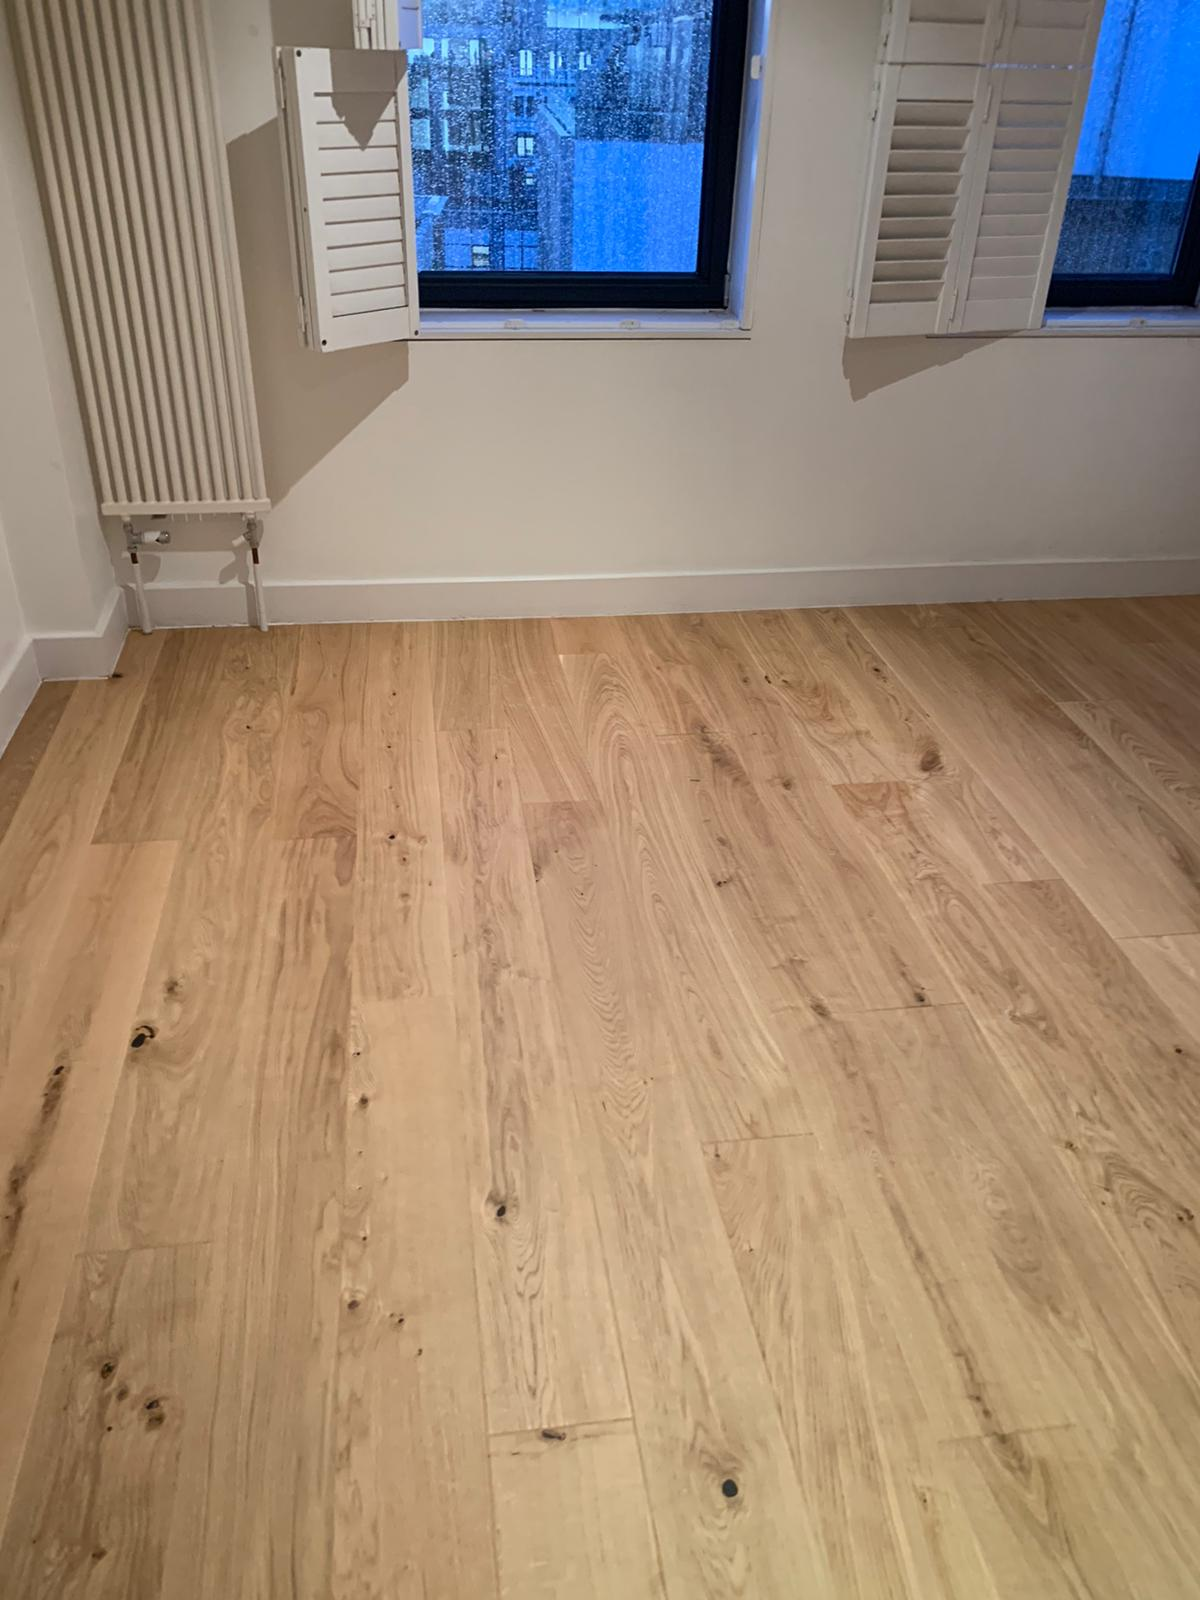 Kersaint Cobb hardwood flooring in Barnes 9